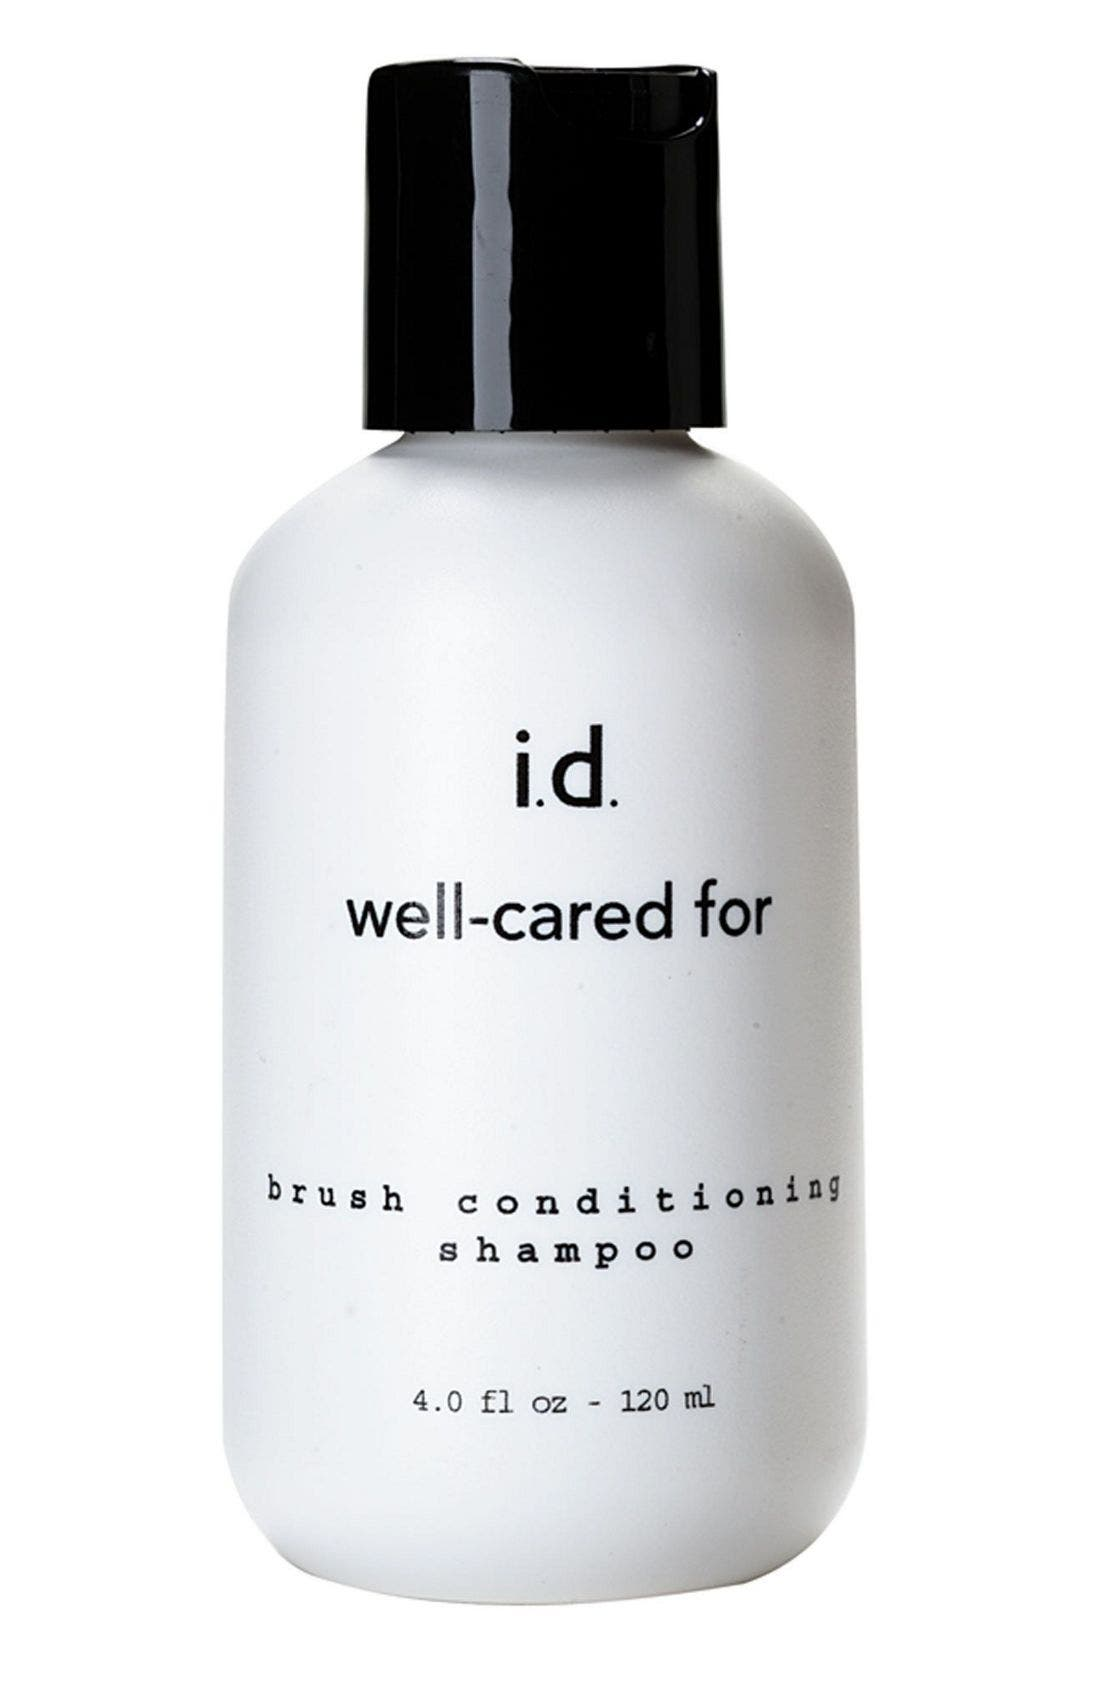 bareMinerals® Well-Cared For Brush Conditioning Shampoo